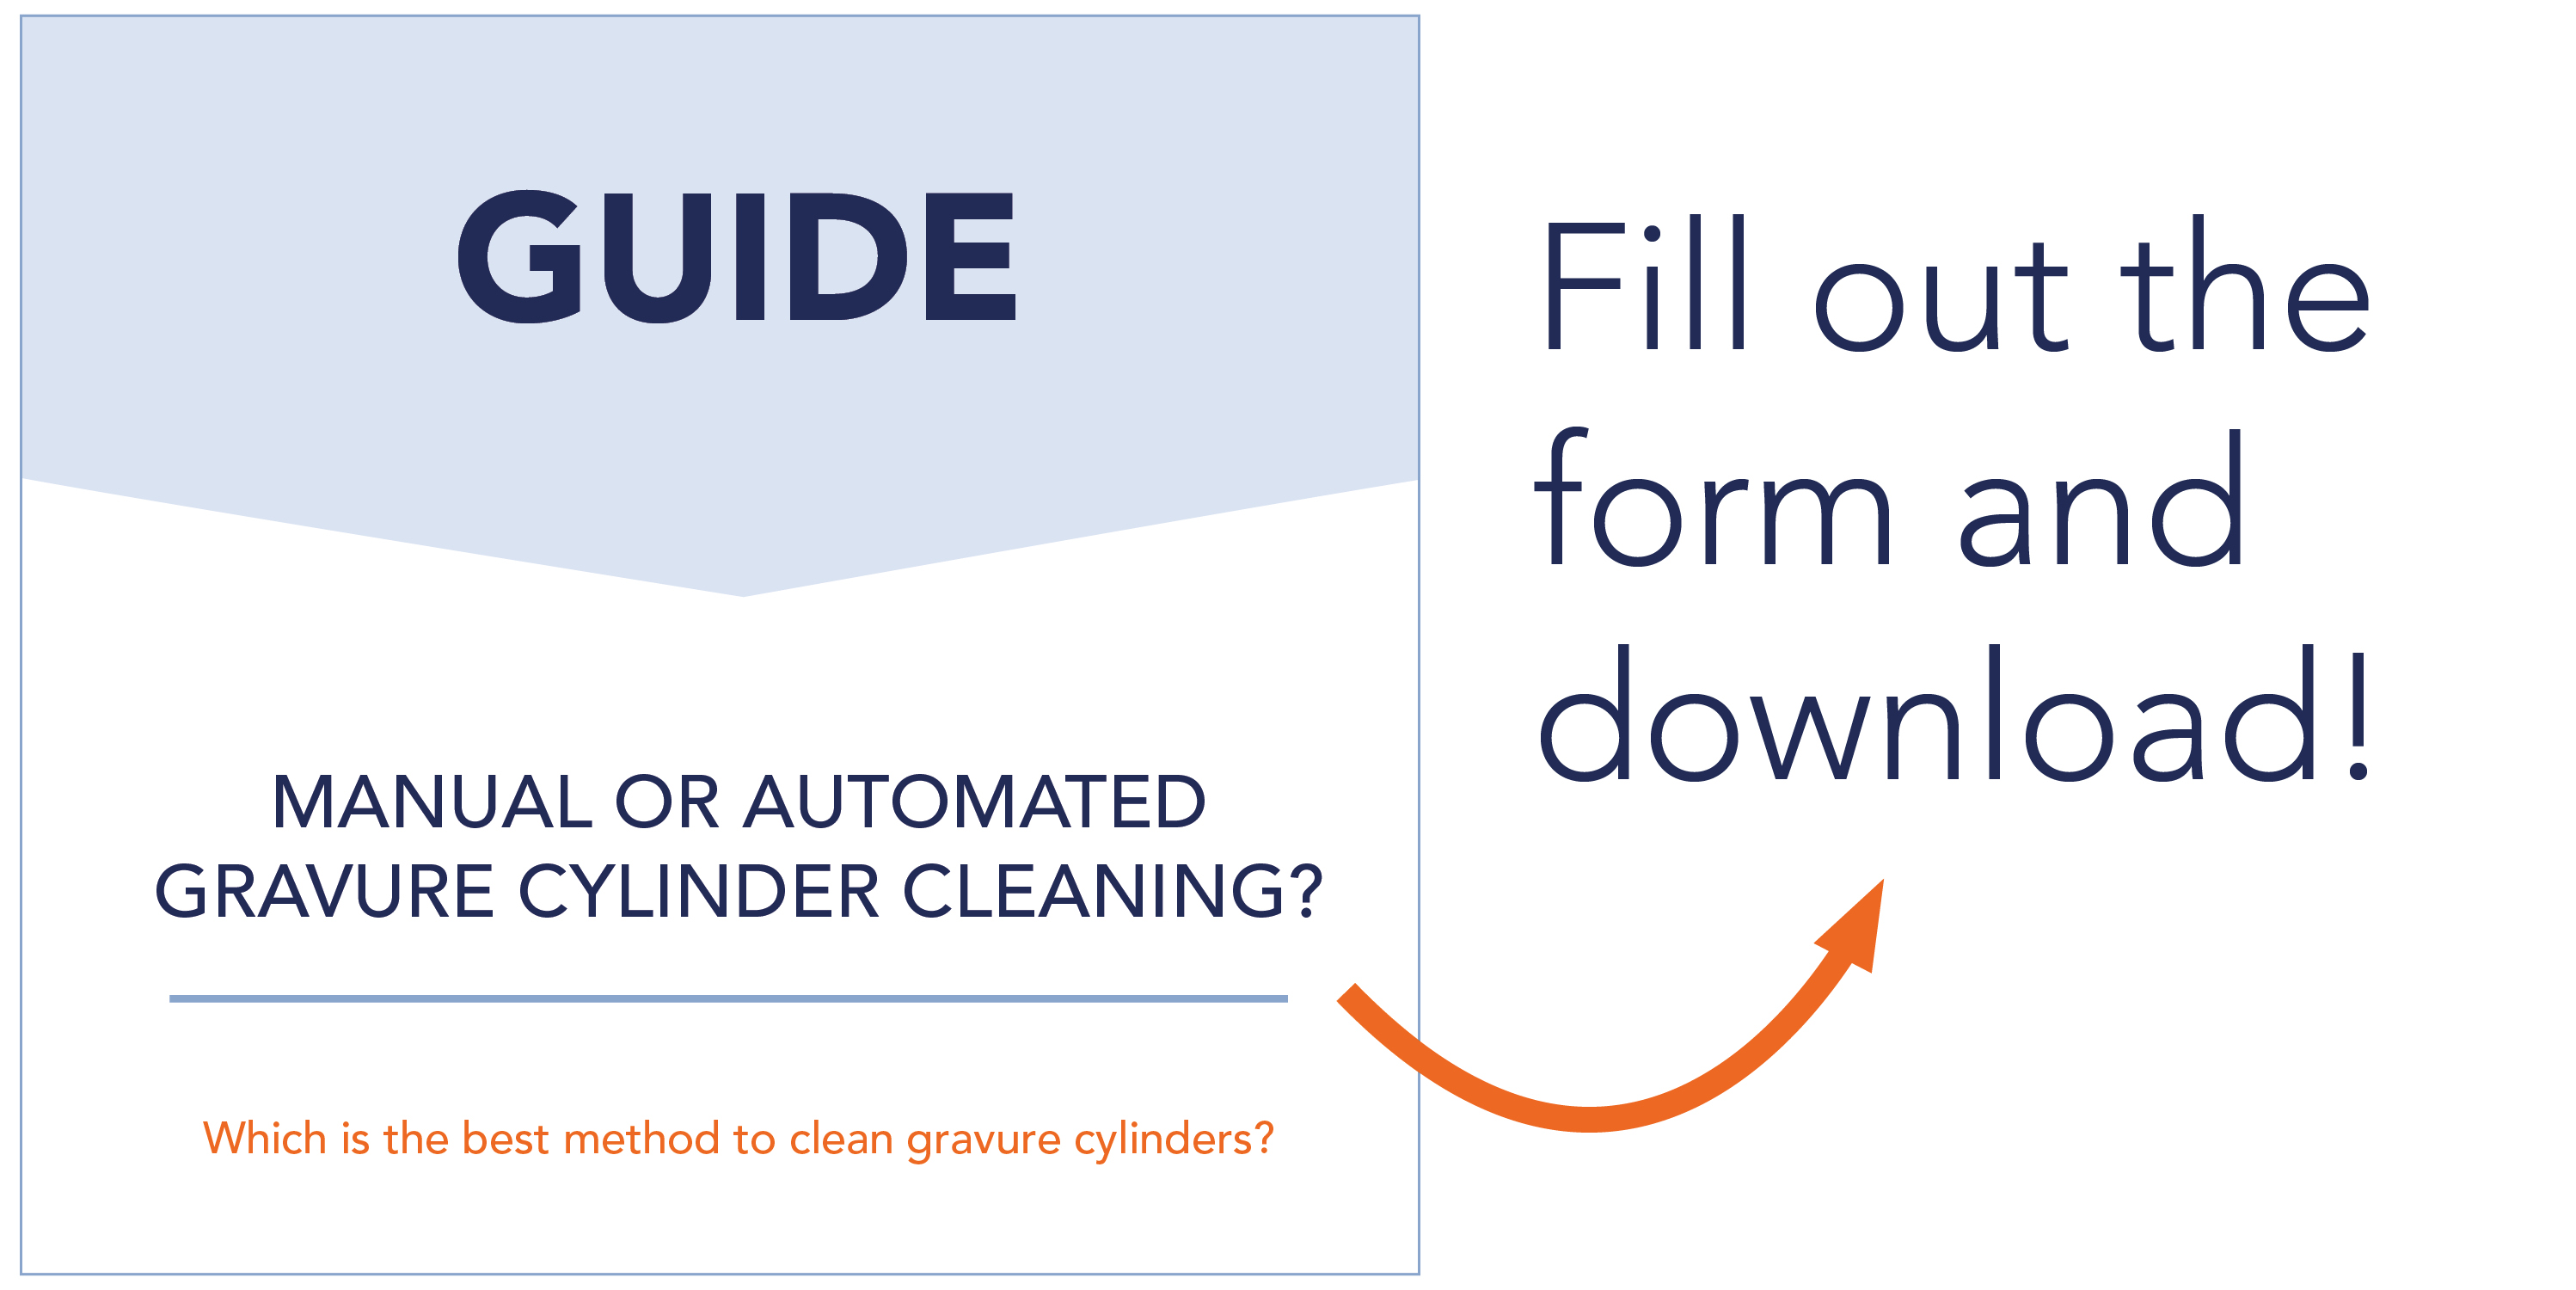 Image_guide_manual or automated cylinder cleaning_2